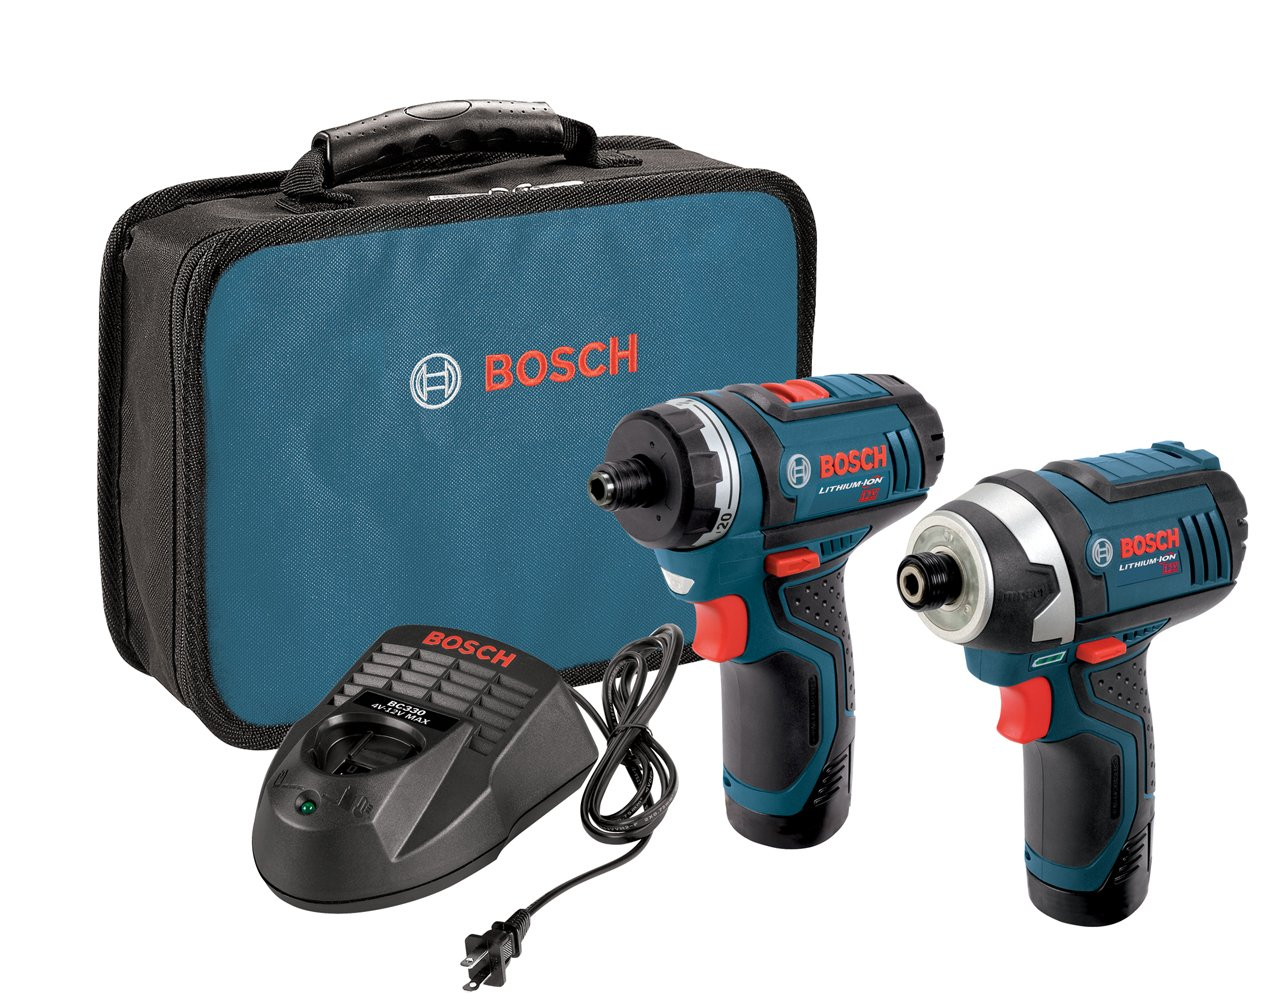 Bosch CLPK27-120 12V Max  2-Tool Combo Kit (Drill/Driver and Impact Driver) with 2 Batteries, Charger and Case by Bosch